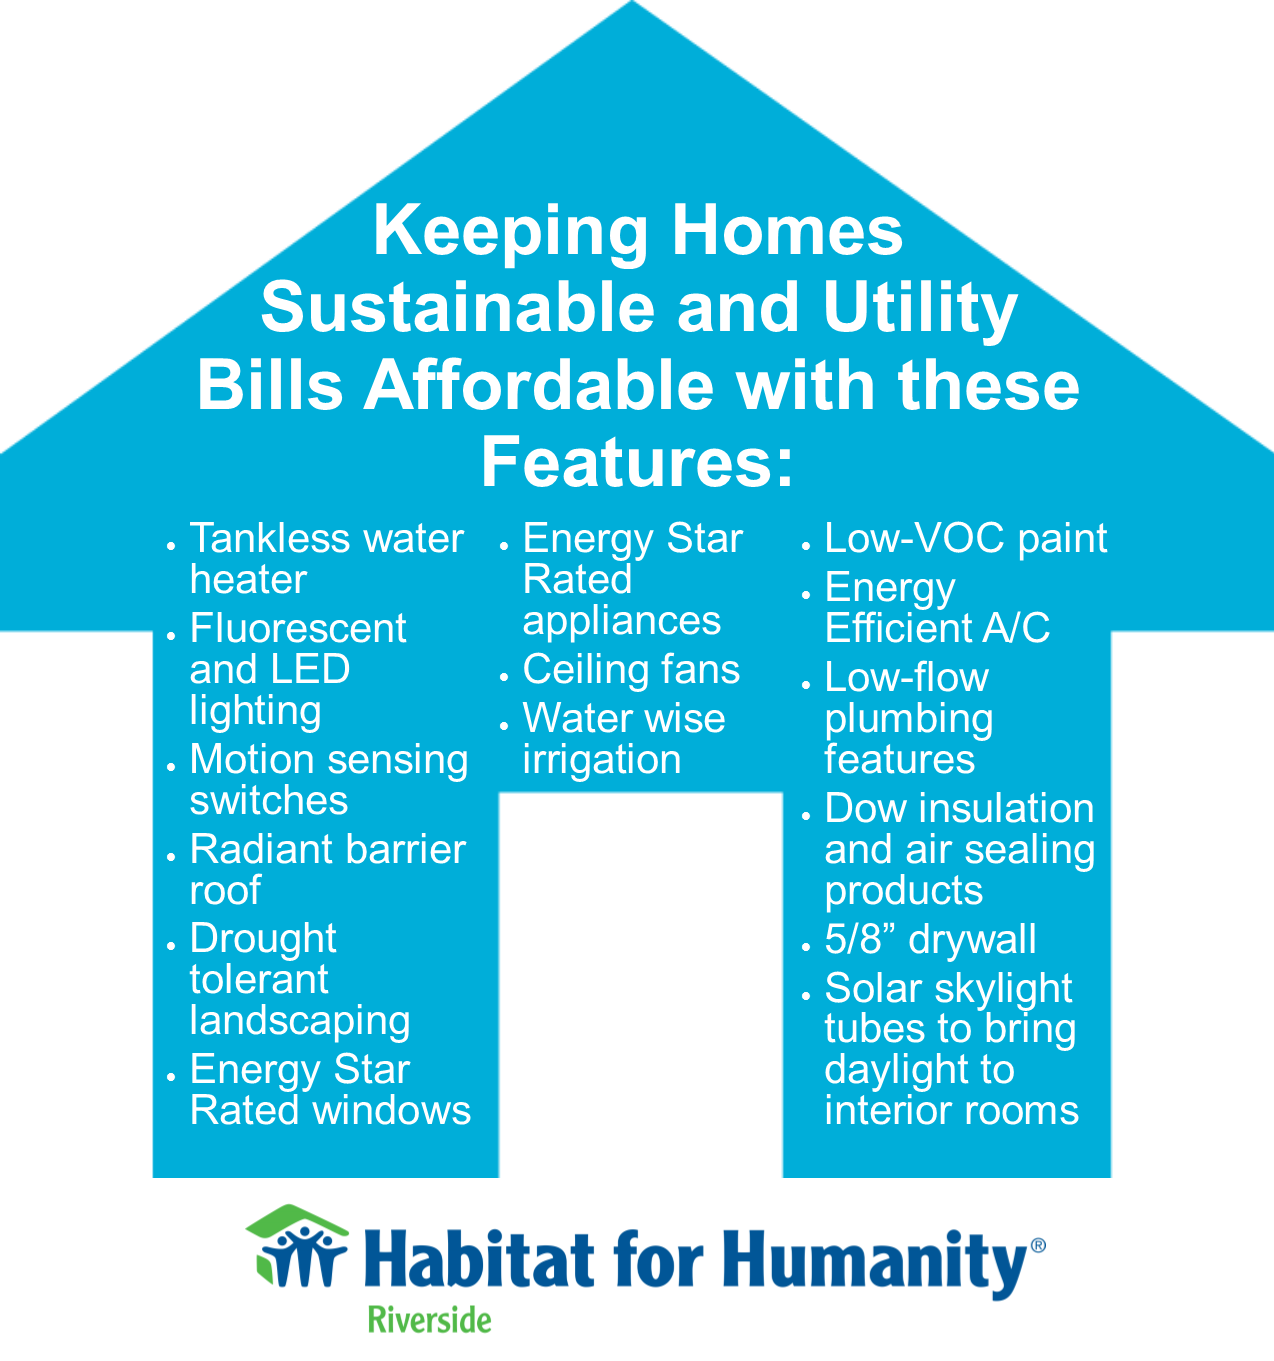 Keeping Homes Sustainable